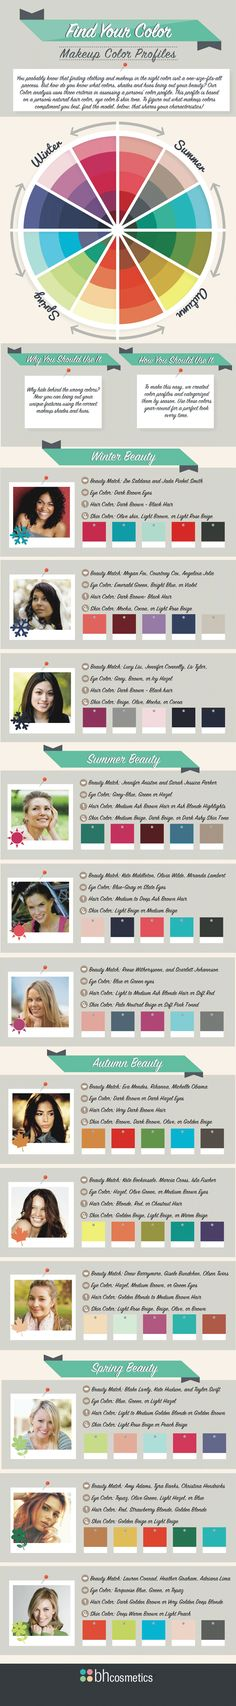 Makeup Color Profiles